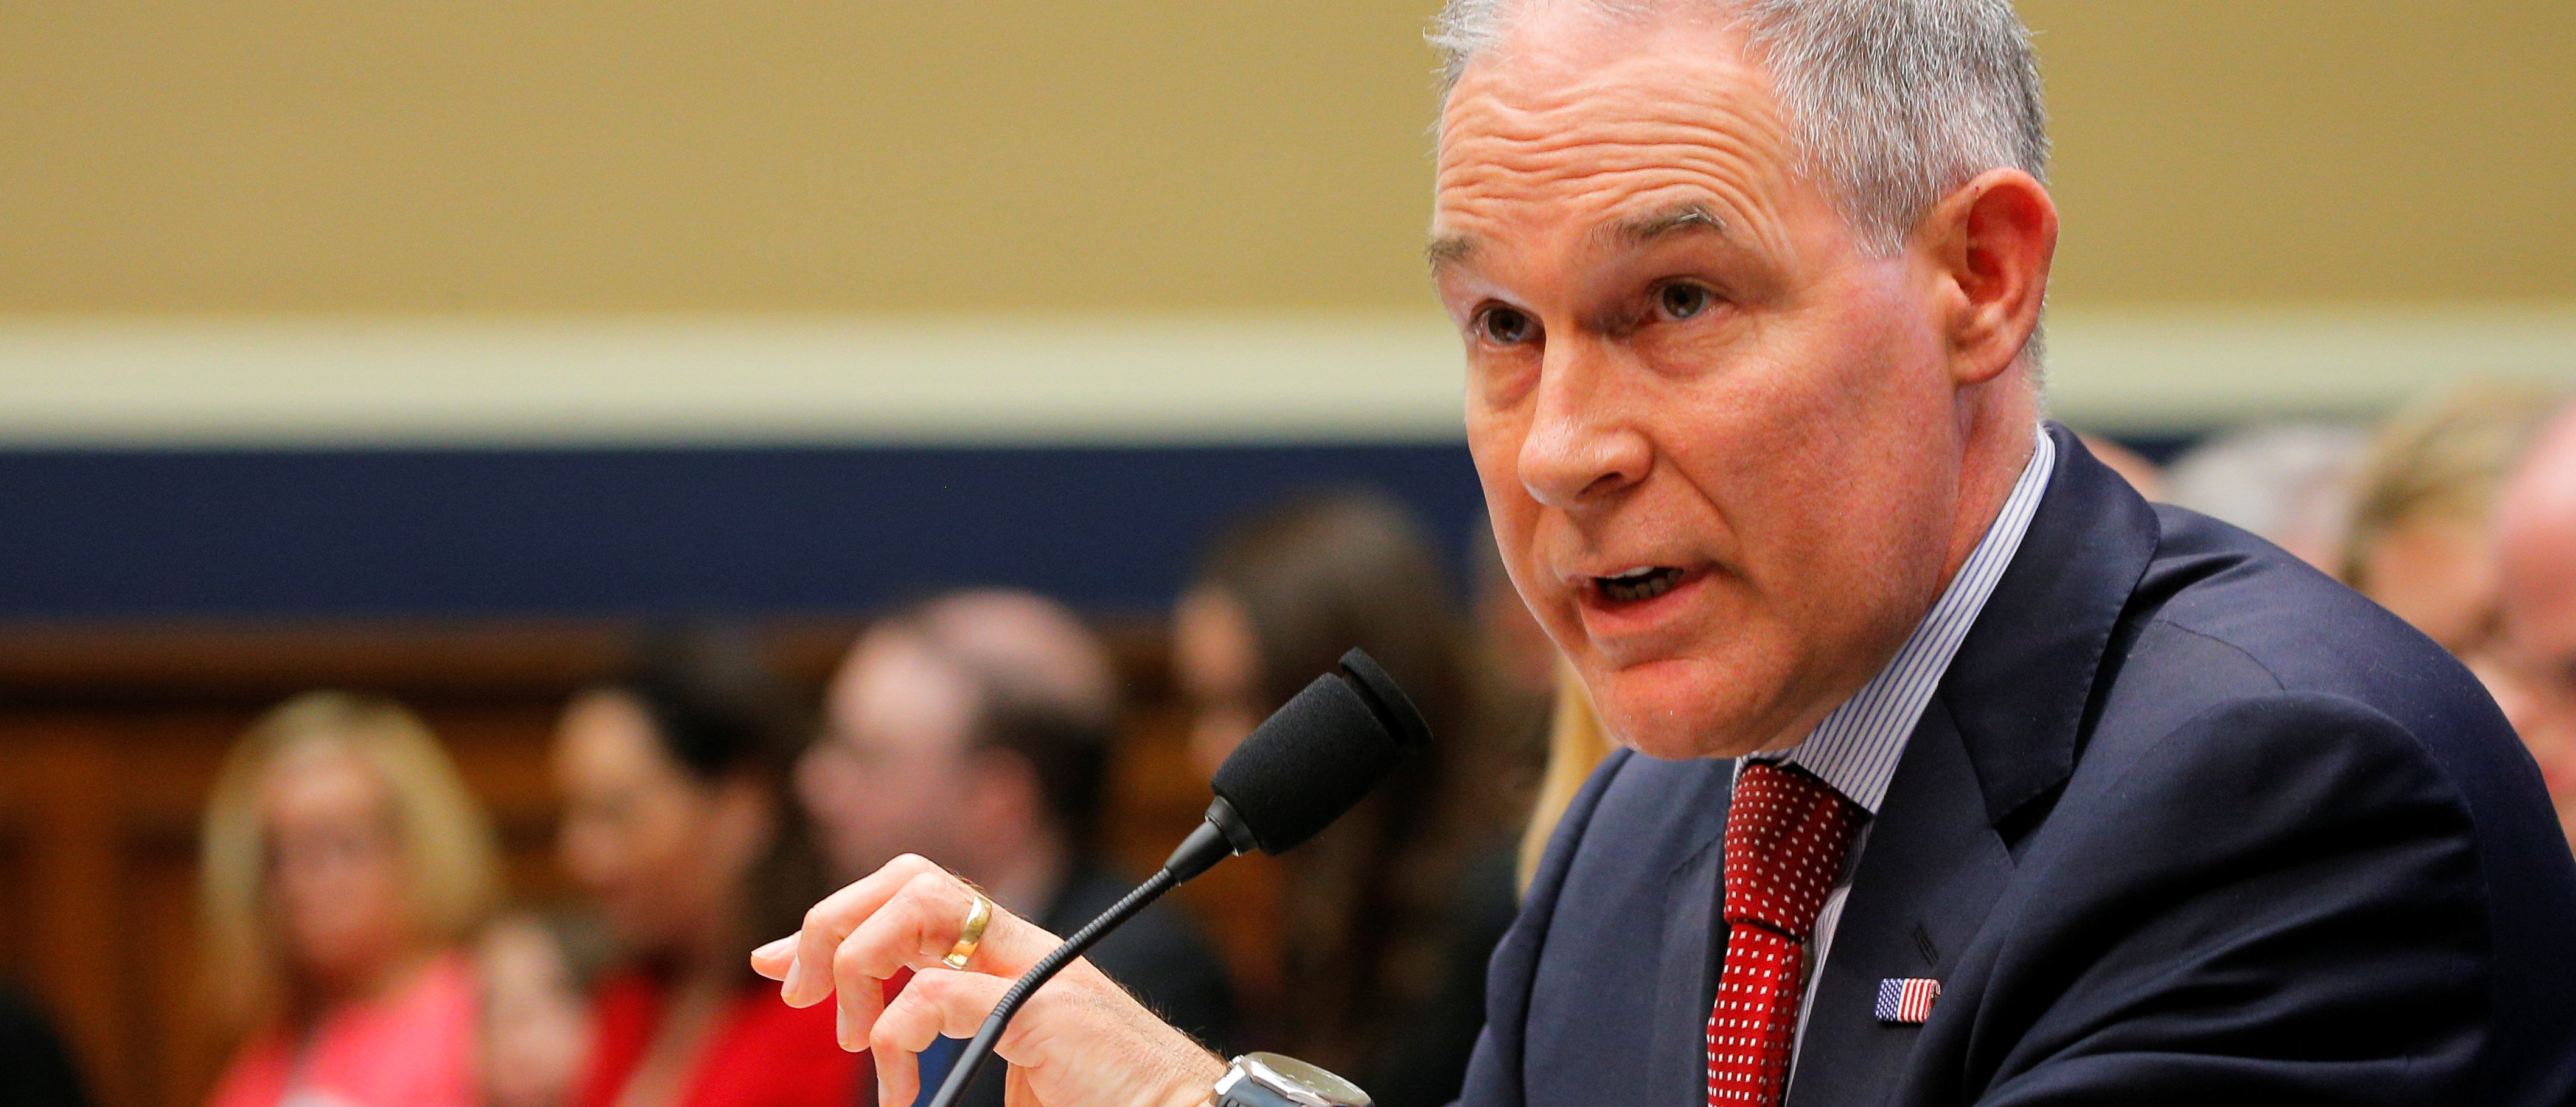 EPA Administrator Scott Pruitt gestures as he testifies before a House Energy and Commerce Subcommittee hearing on the FY2019 Environmental Protection Agency budget in Washington, U.S., April 26, 2018. REUTERS/Brian Snyder - RC1937148D00